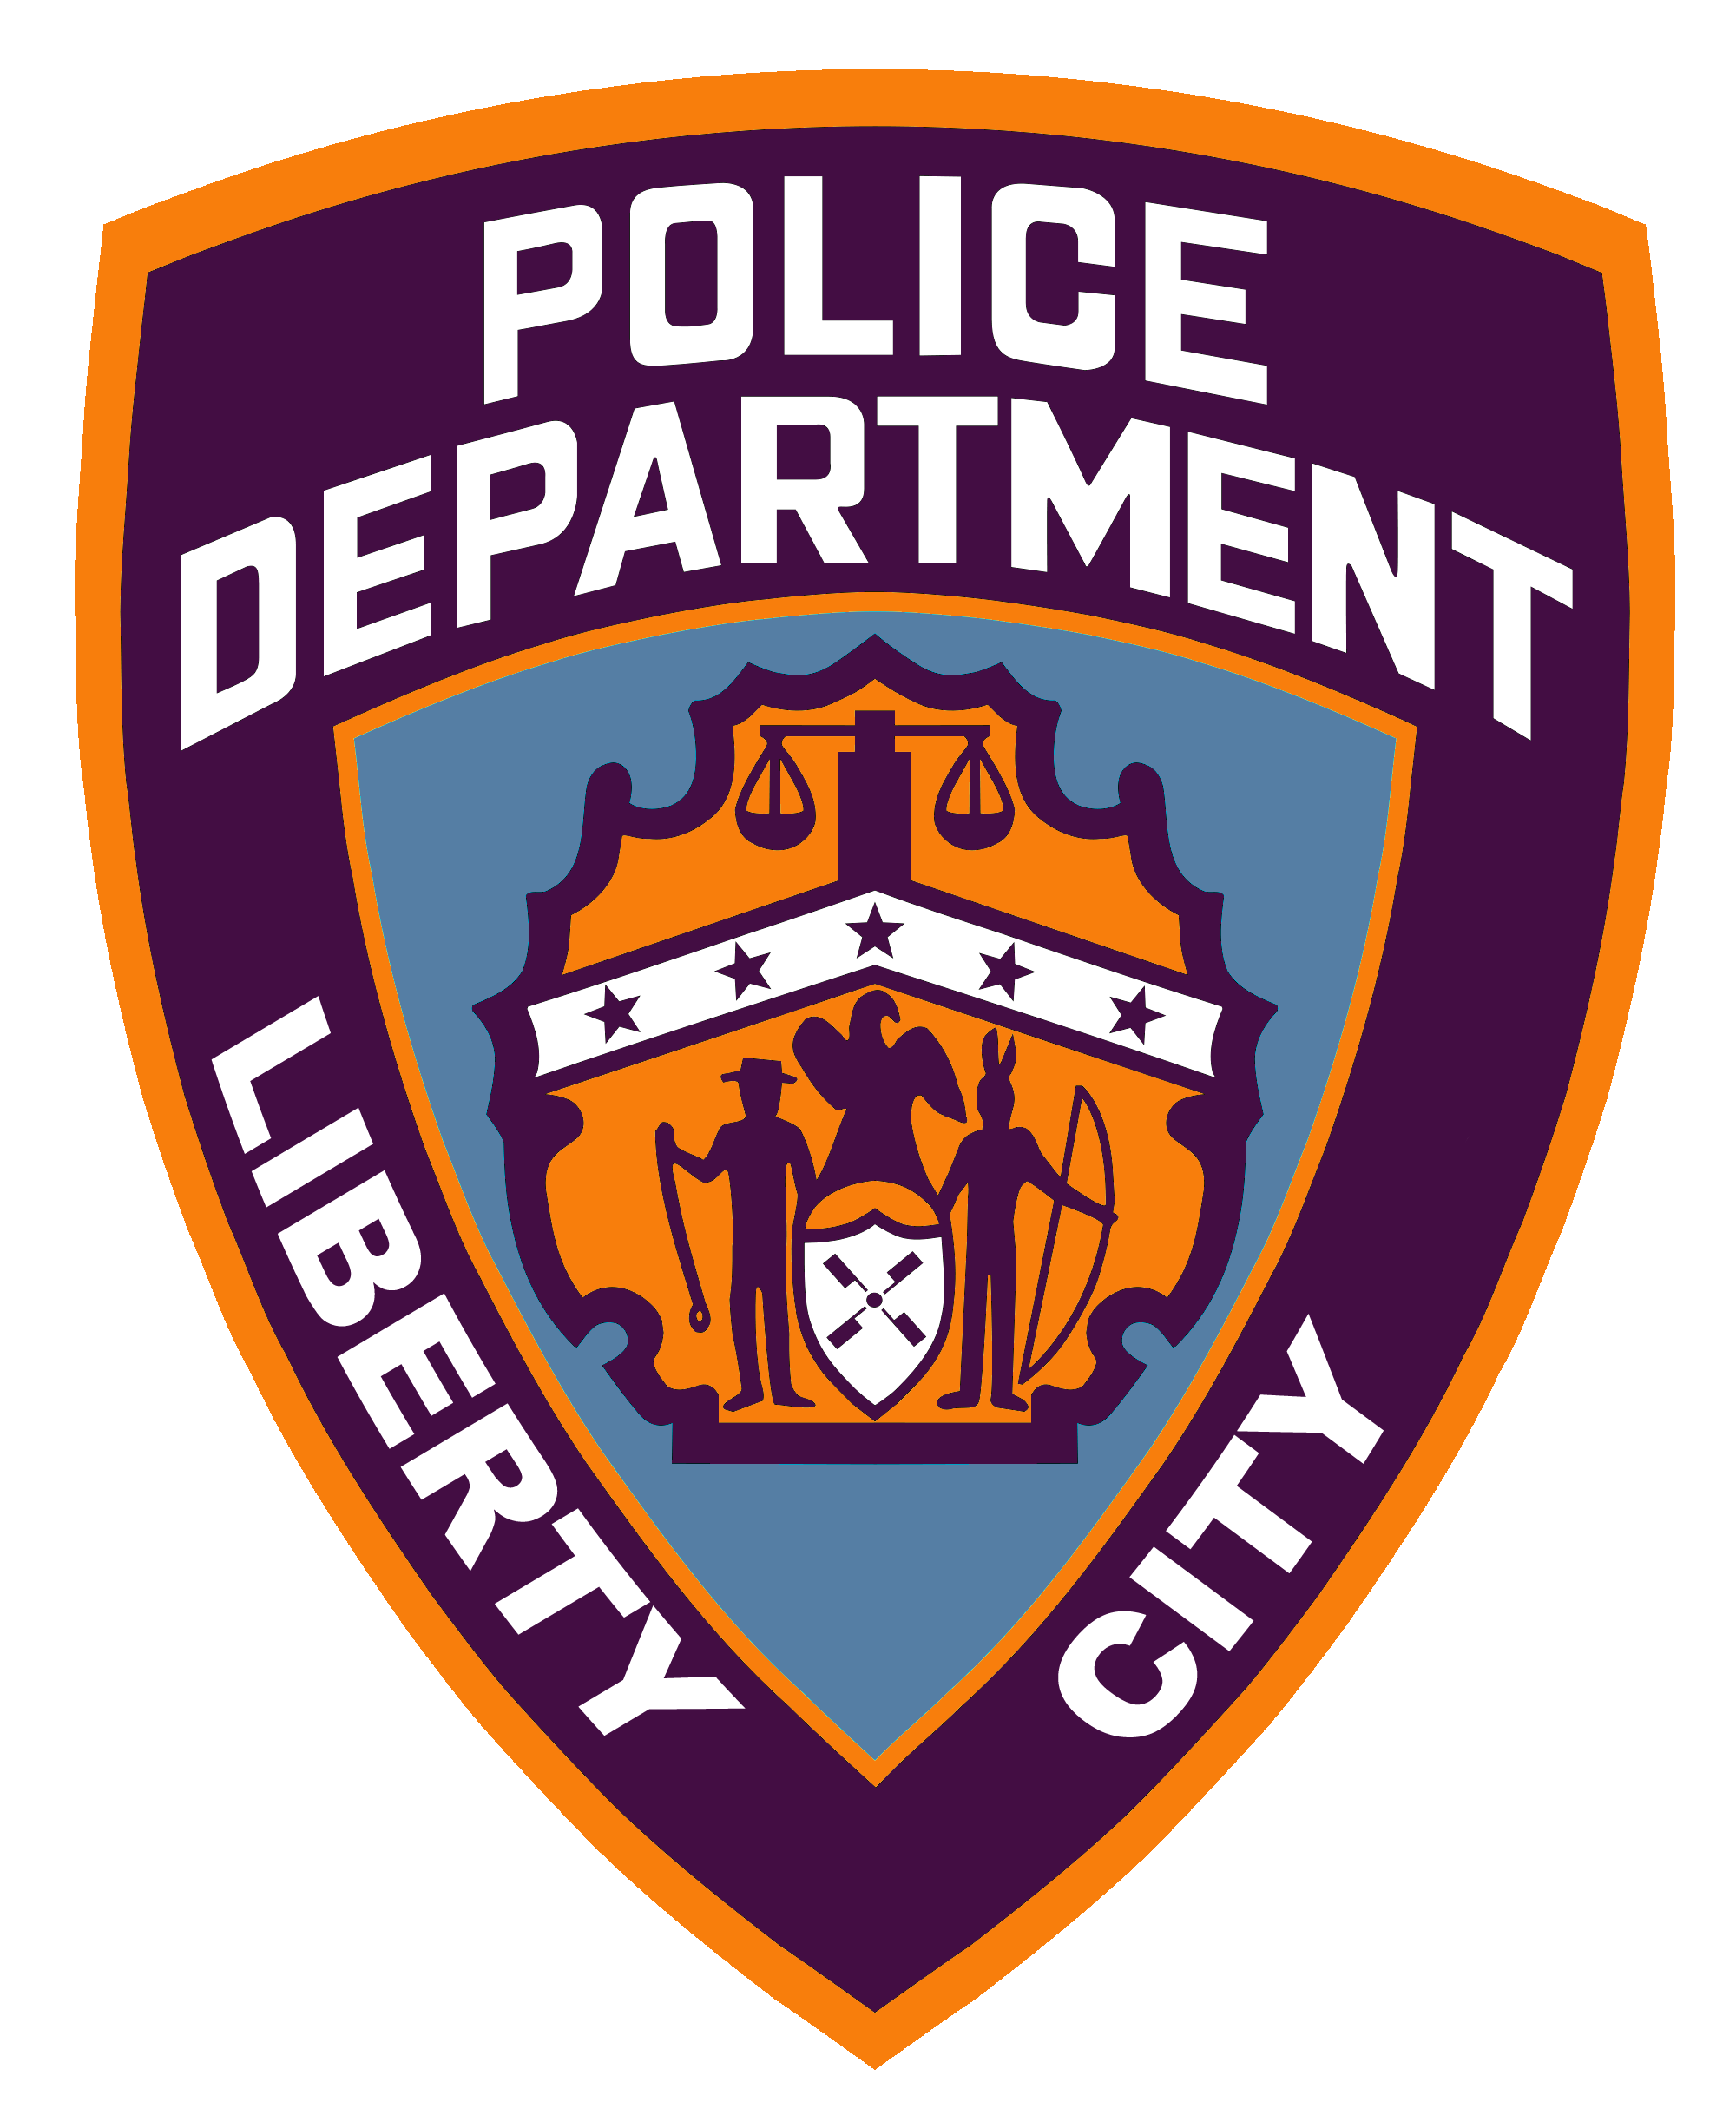 Police Department City Of Liberty Games